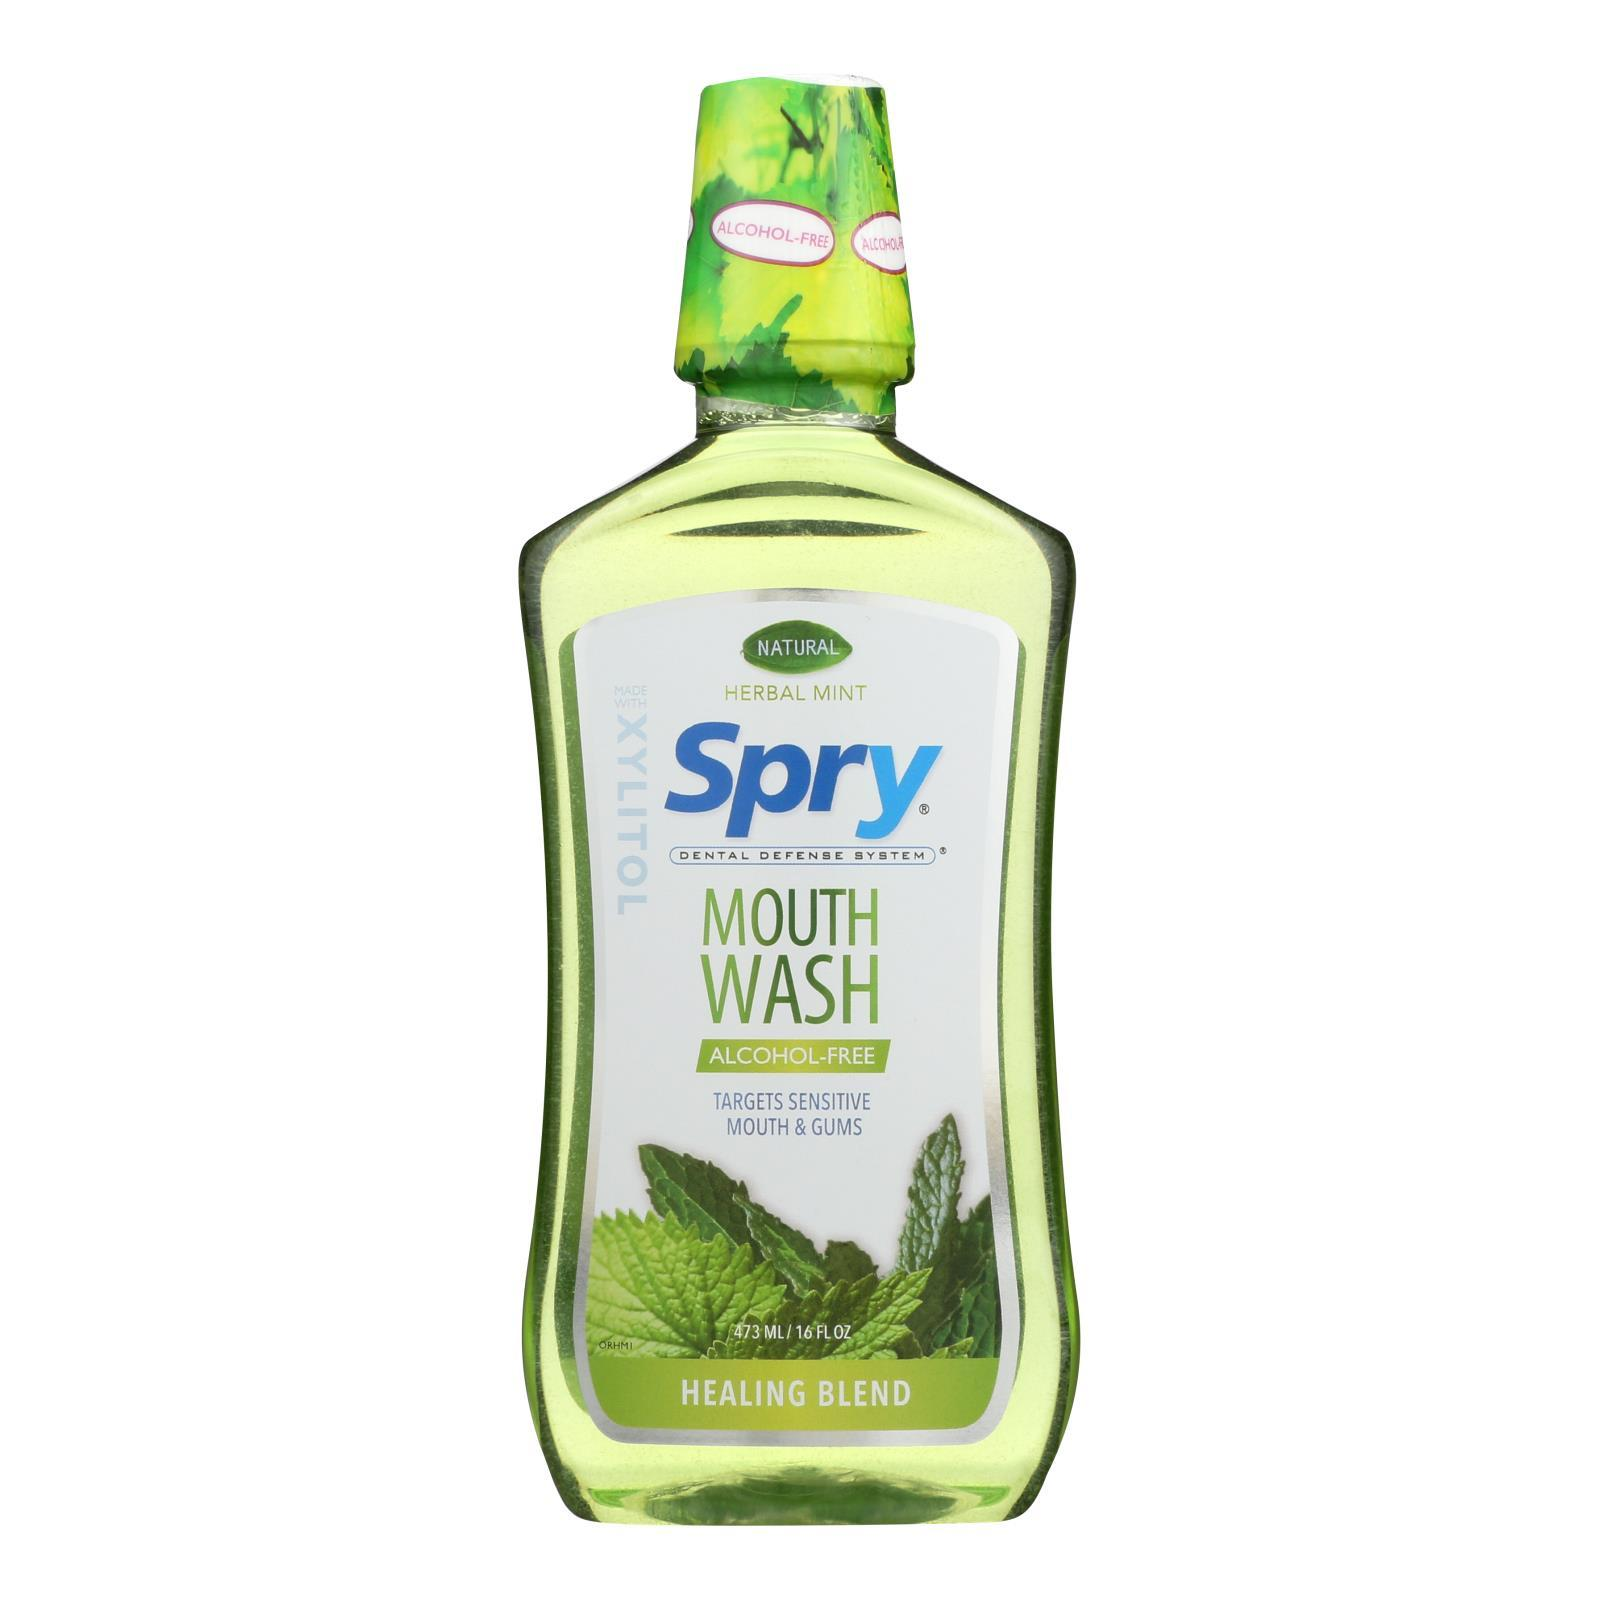 Spry Mouth Wash - Herbal Mint - Af - 16 Fl Oz - BeeGreen